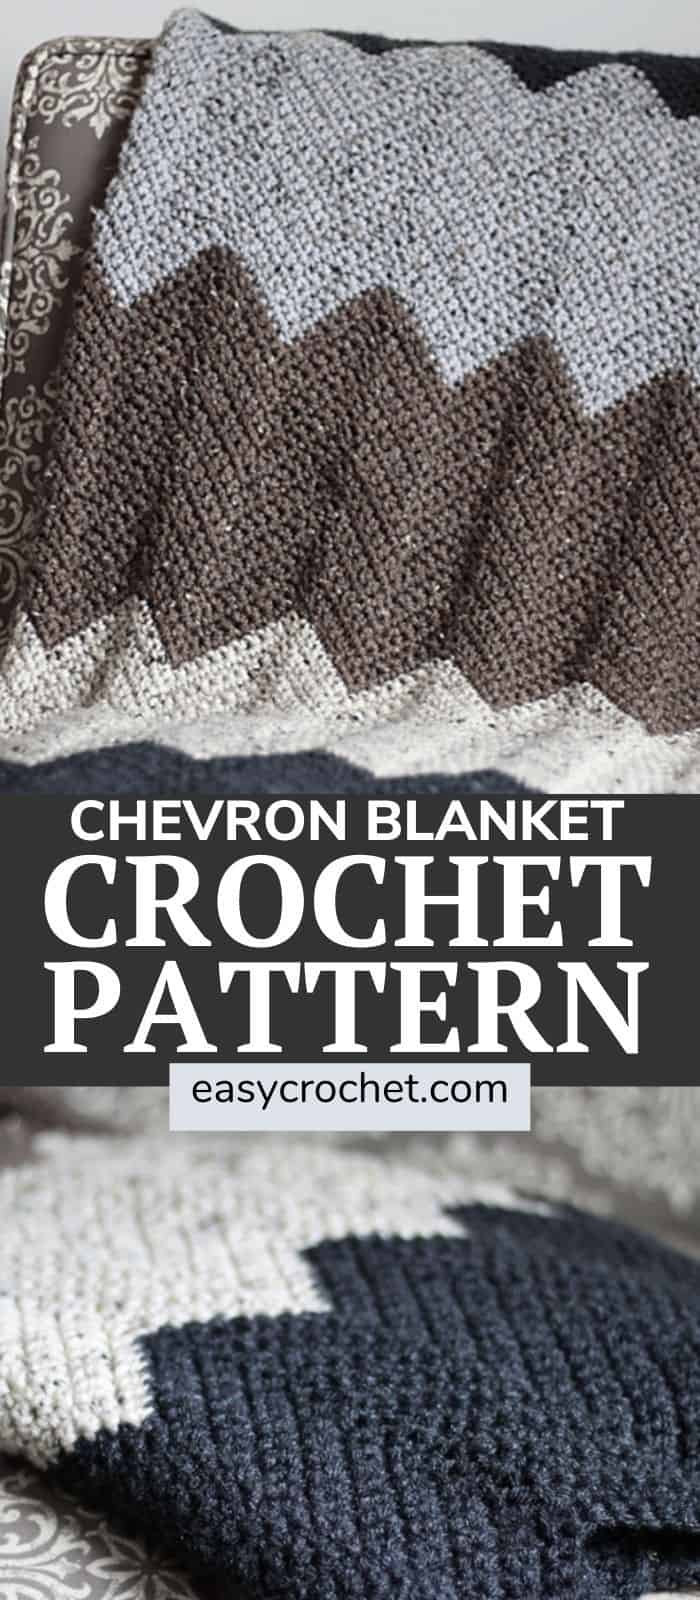 Chevron Crochet Blanket Pattern - Use this FREE crochet pattern to create your next chevron throw blanket. easycrochet.com via @easycrochetcom